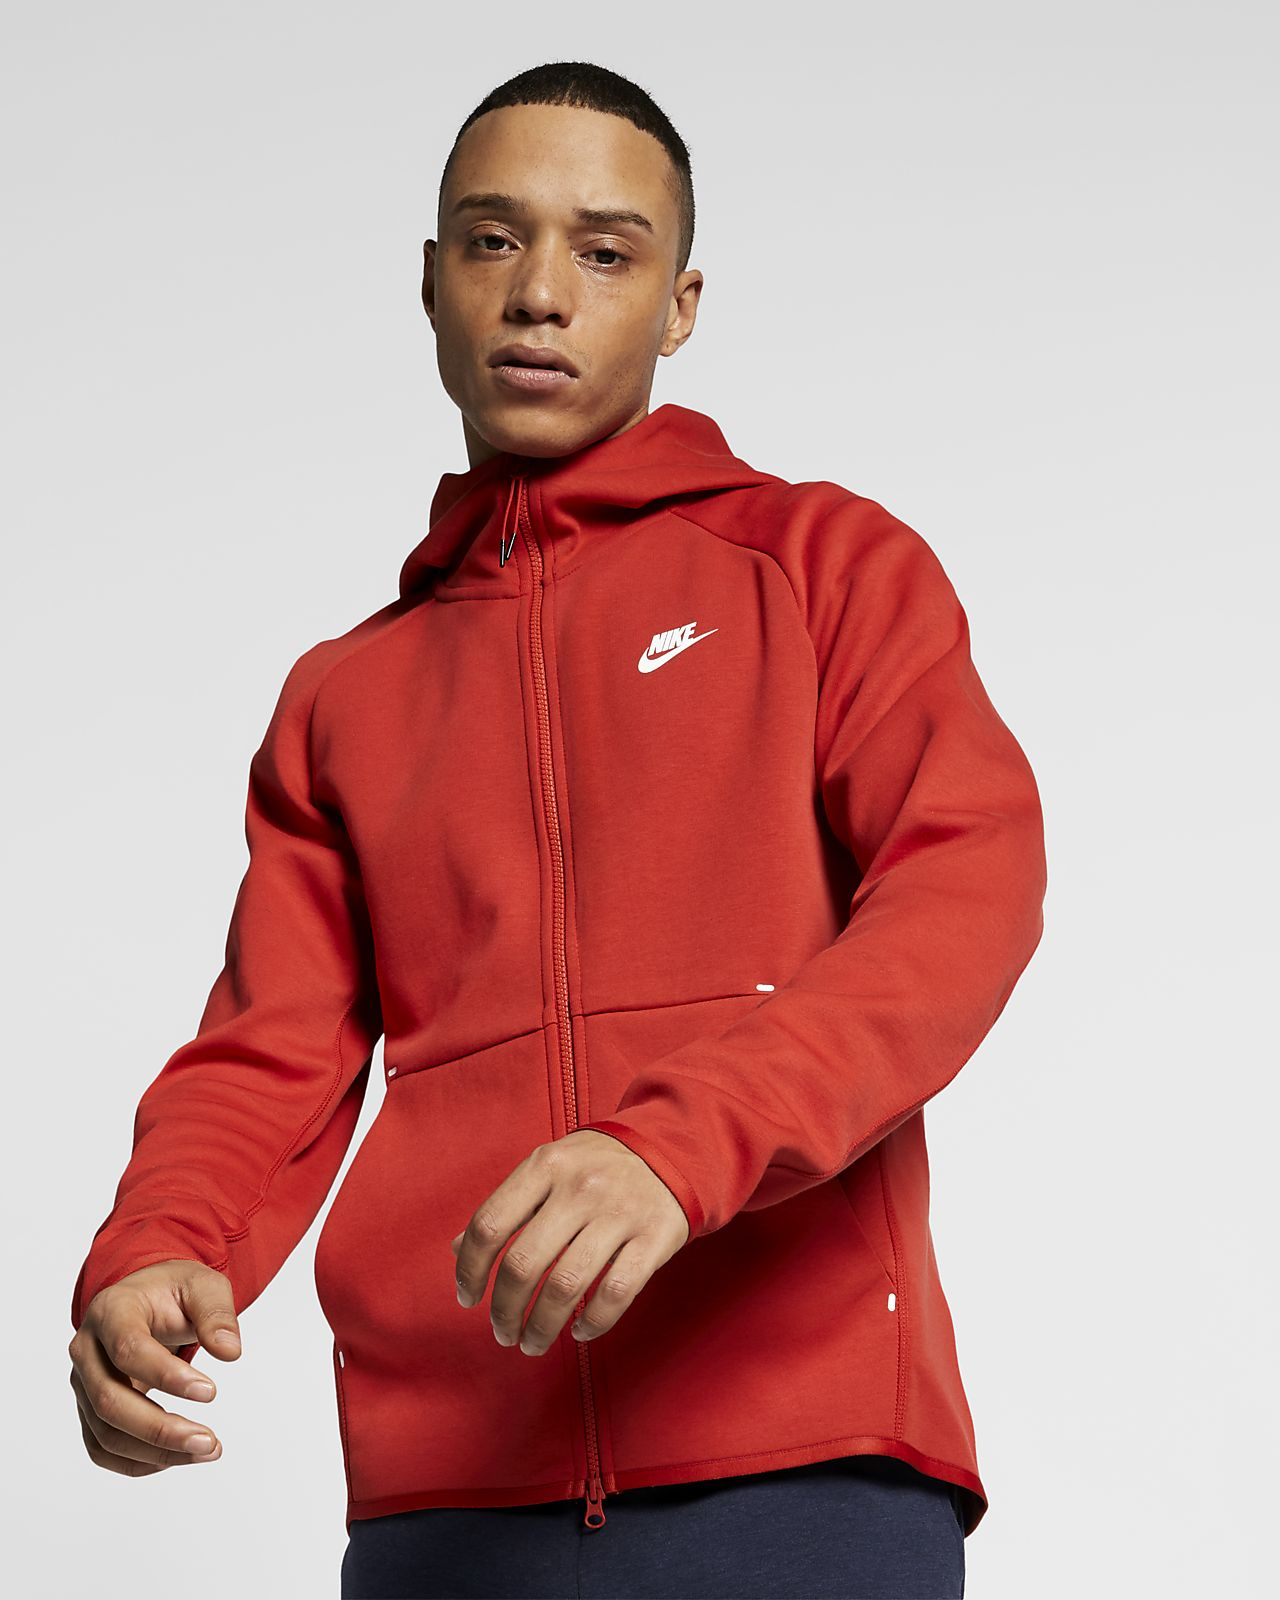 1b86095fcc56 Nike Sportswear Tech Fleece Men s Full-Zip Hoodie. Nike.com